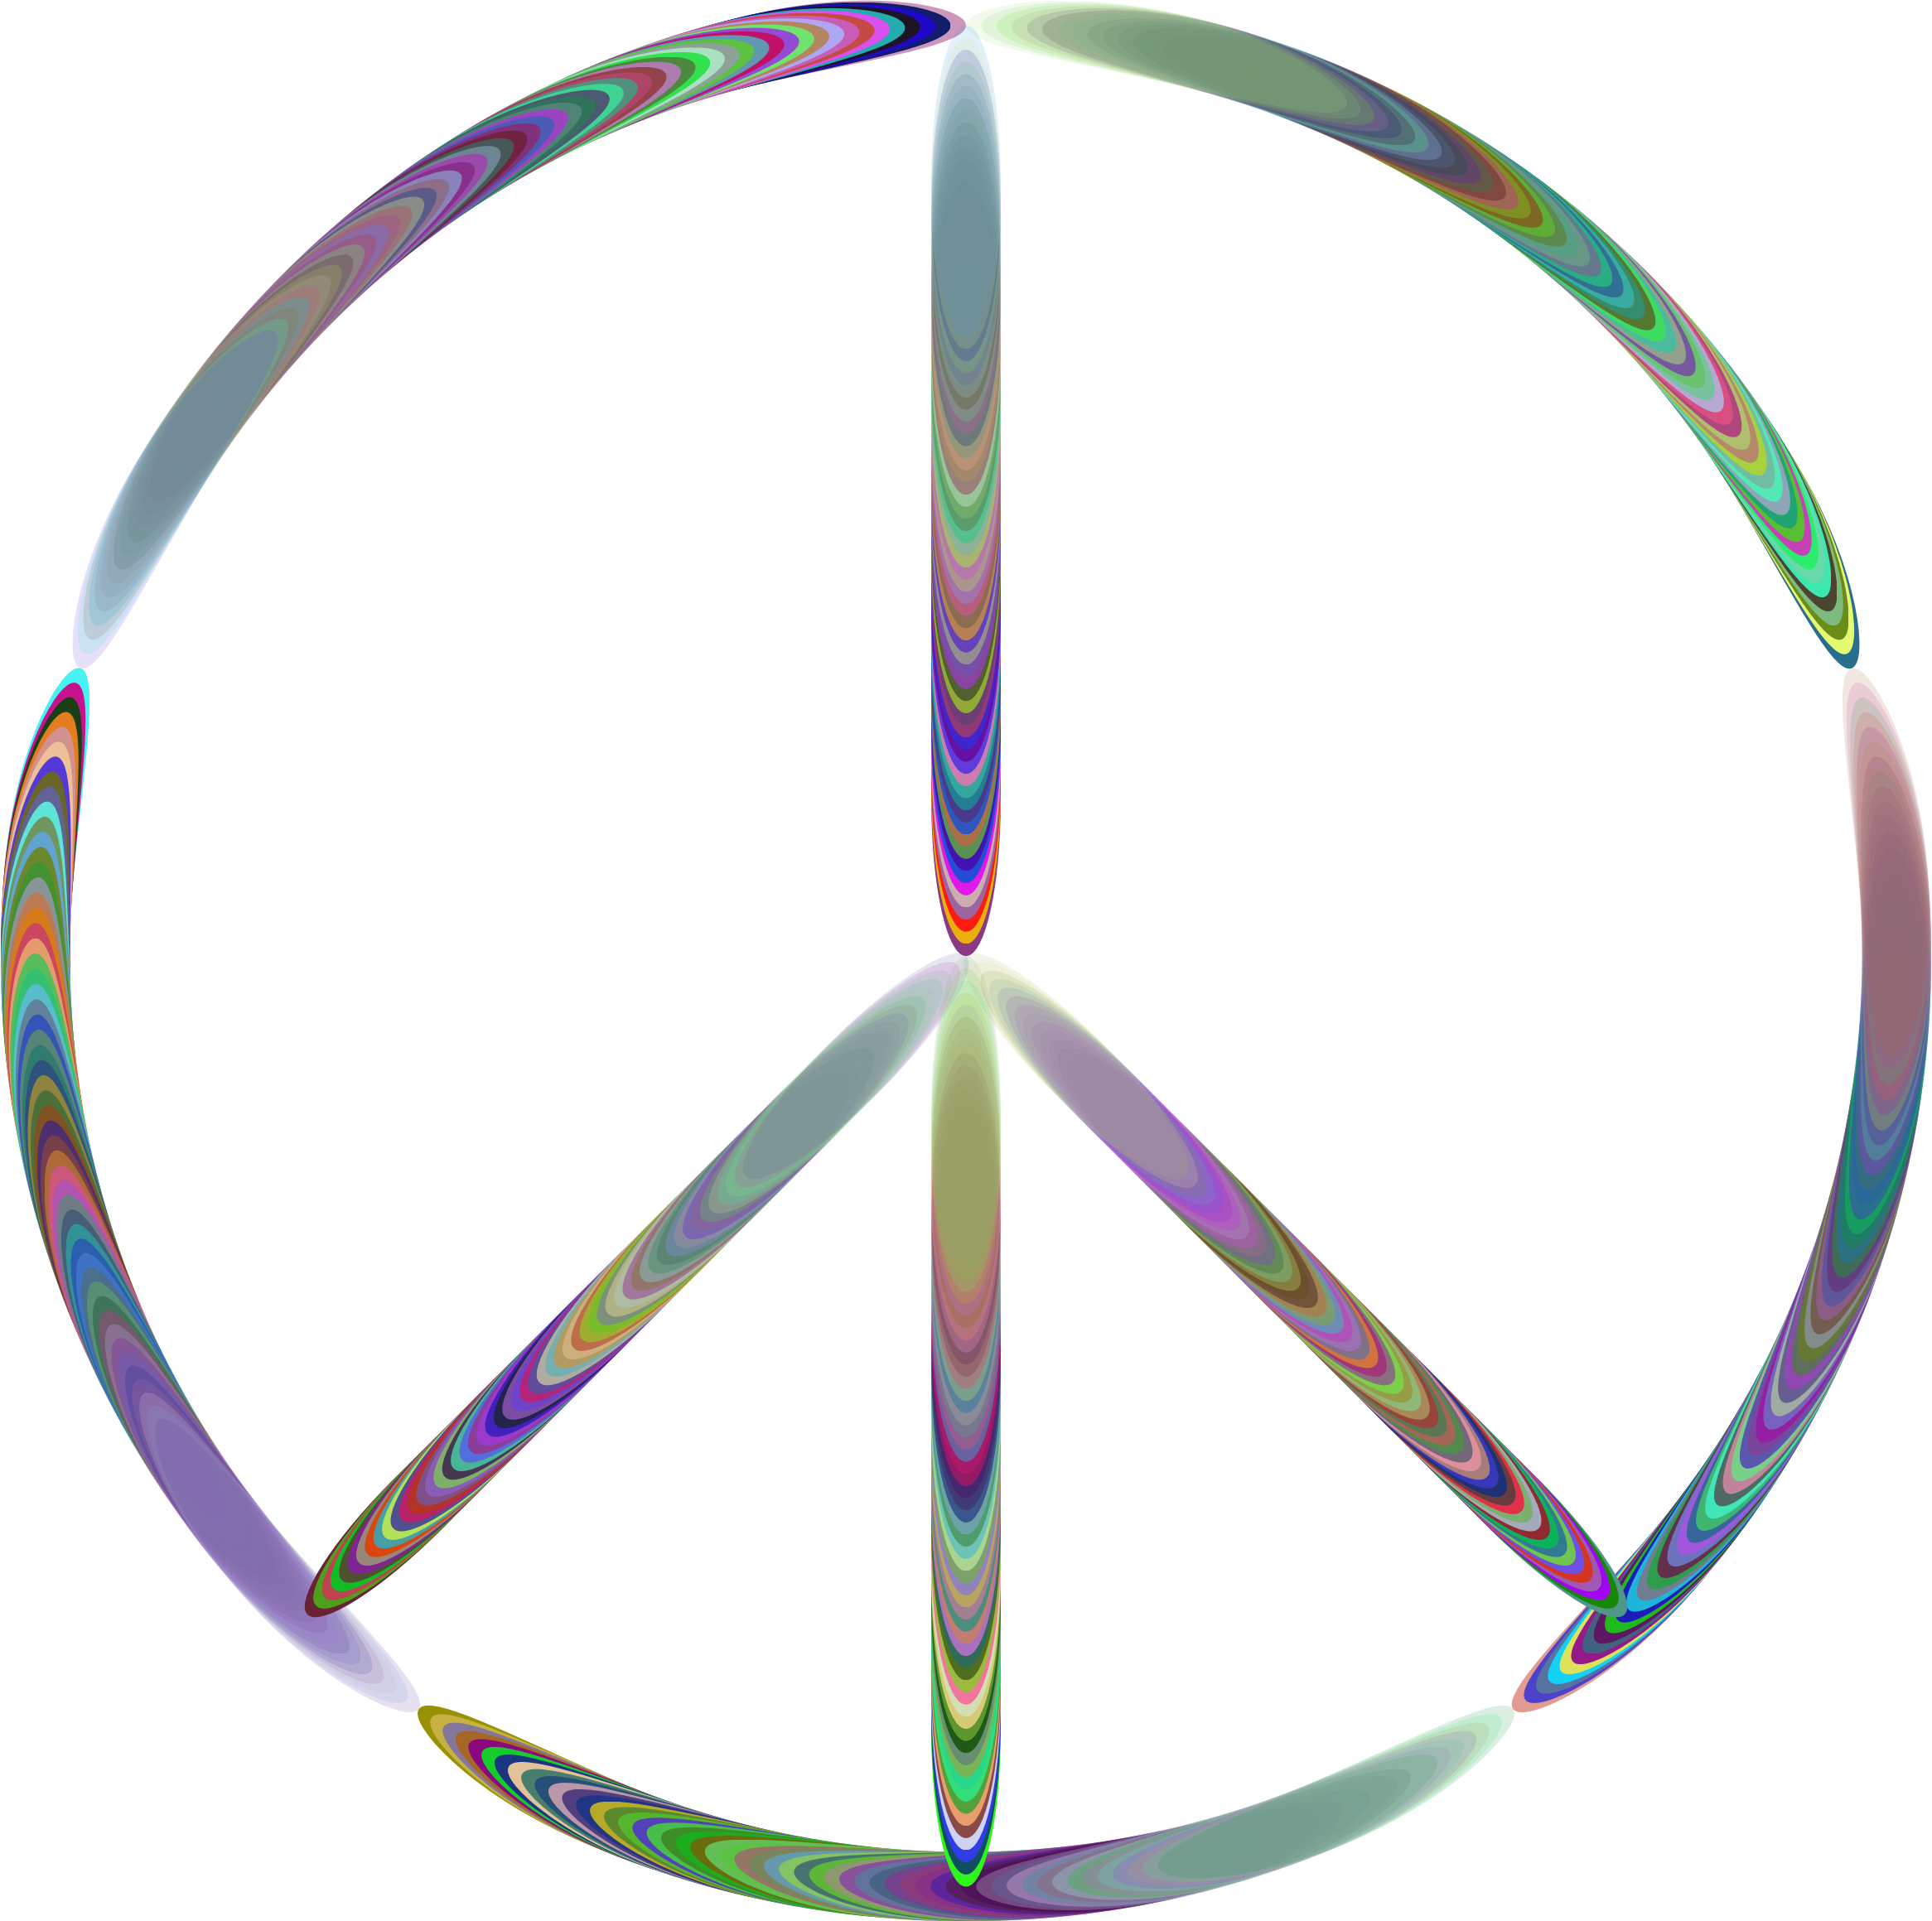 Sixties Groovy Peace Sign by GDJ